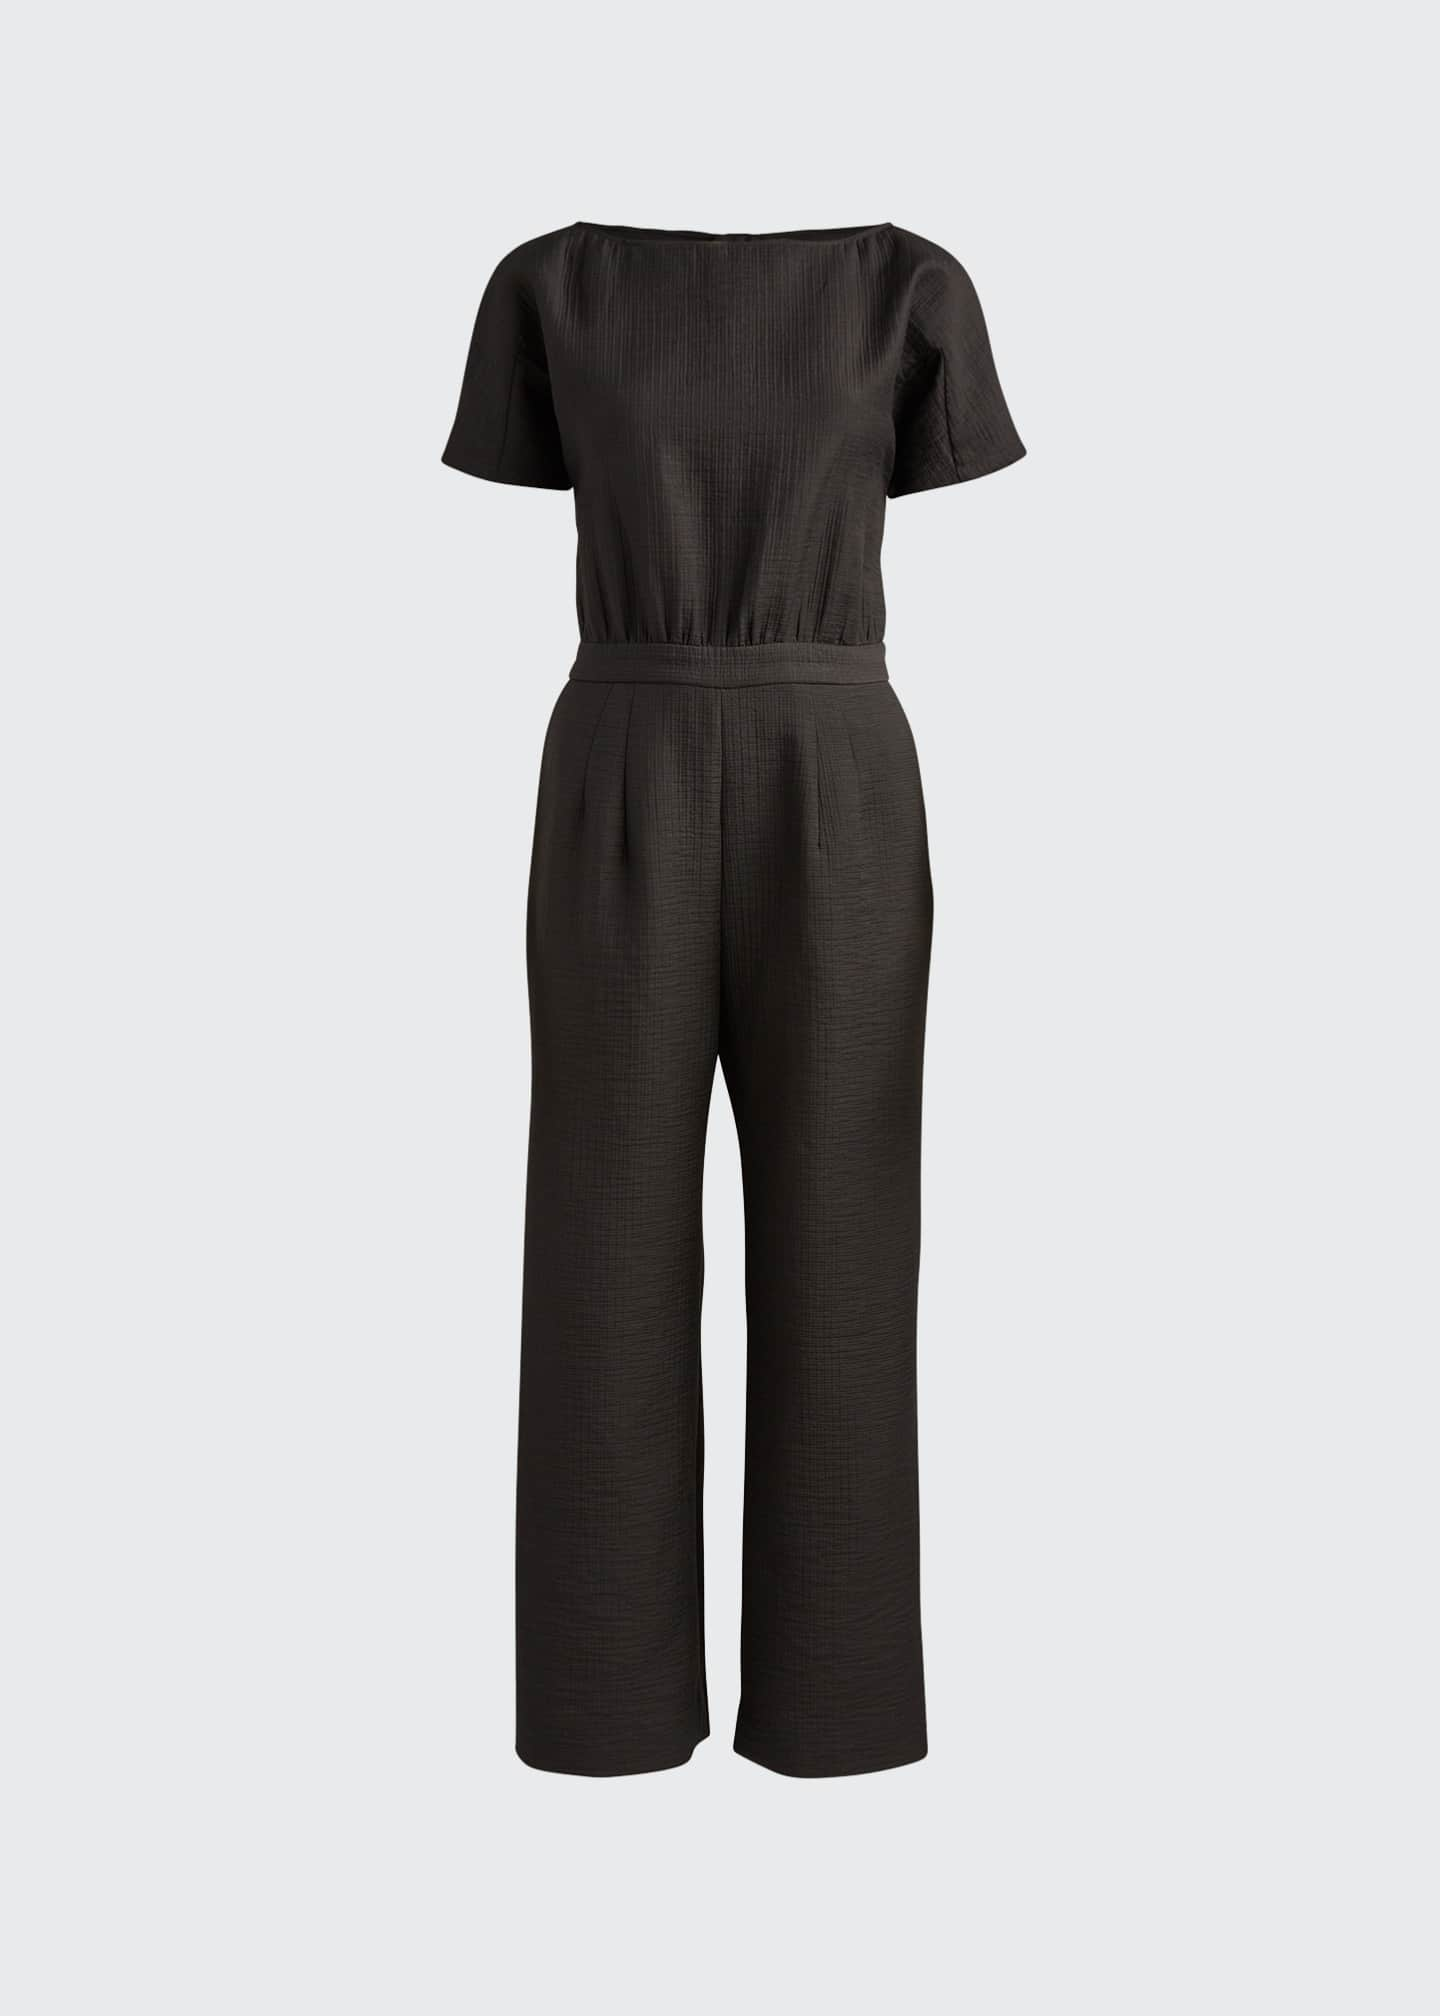 Image 5 of 5: Benedict Short-Sleeve Jumpsuit